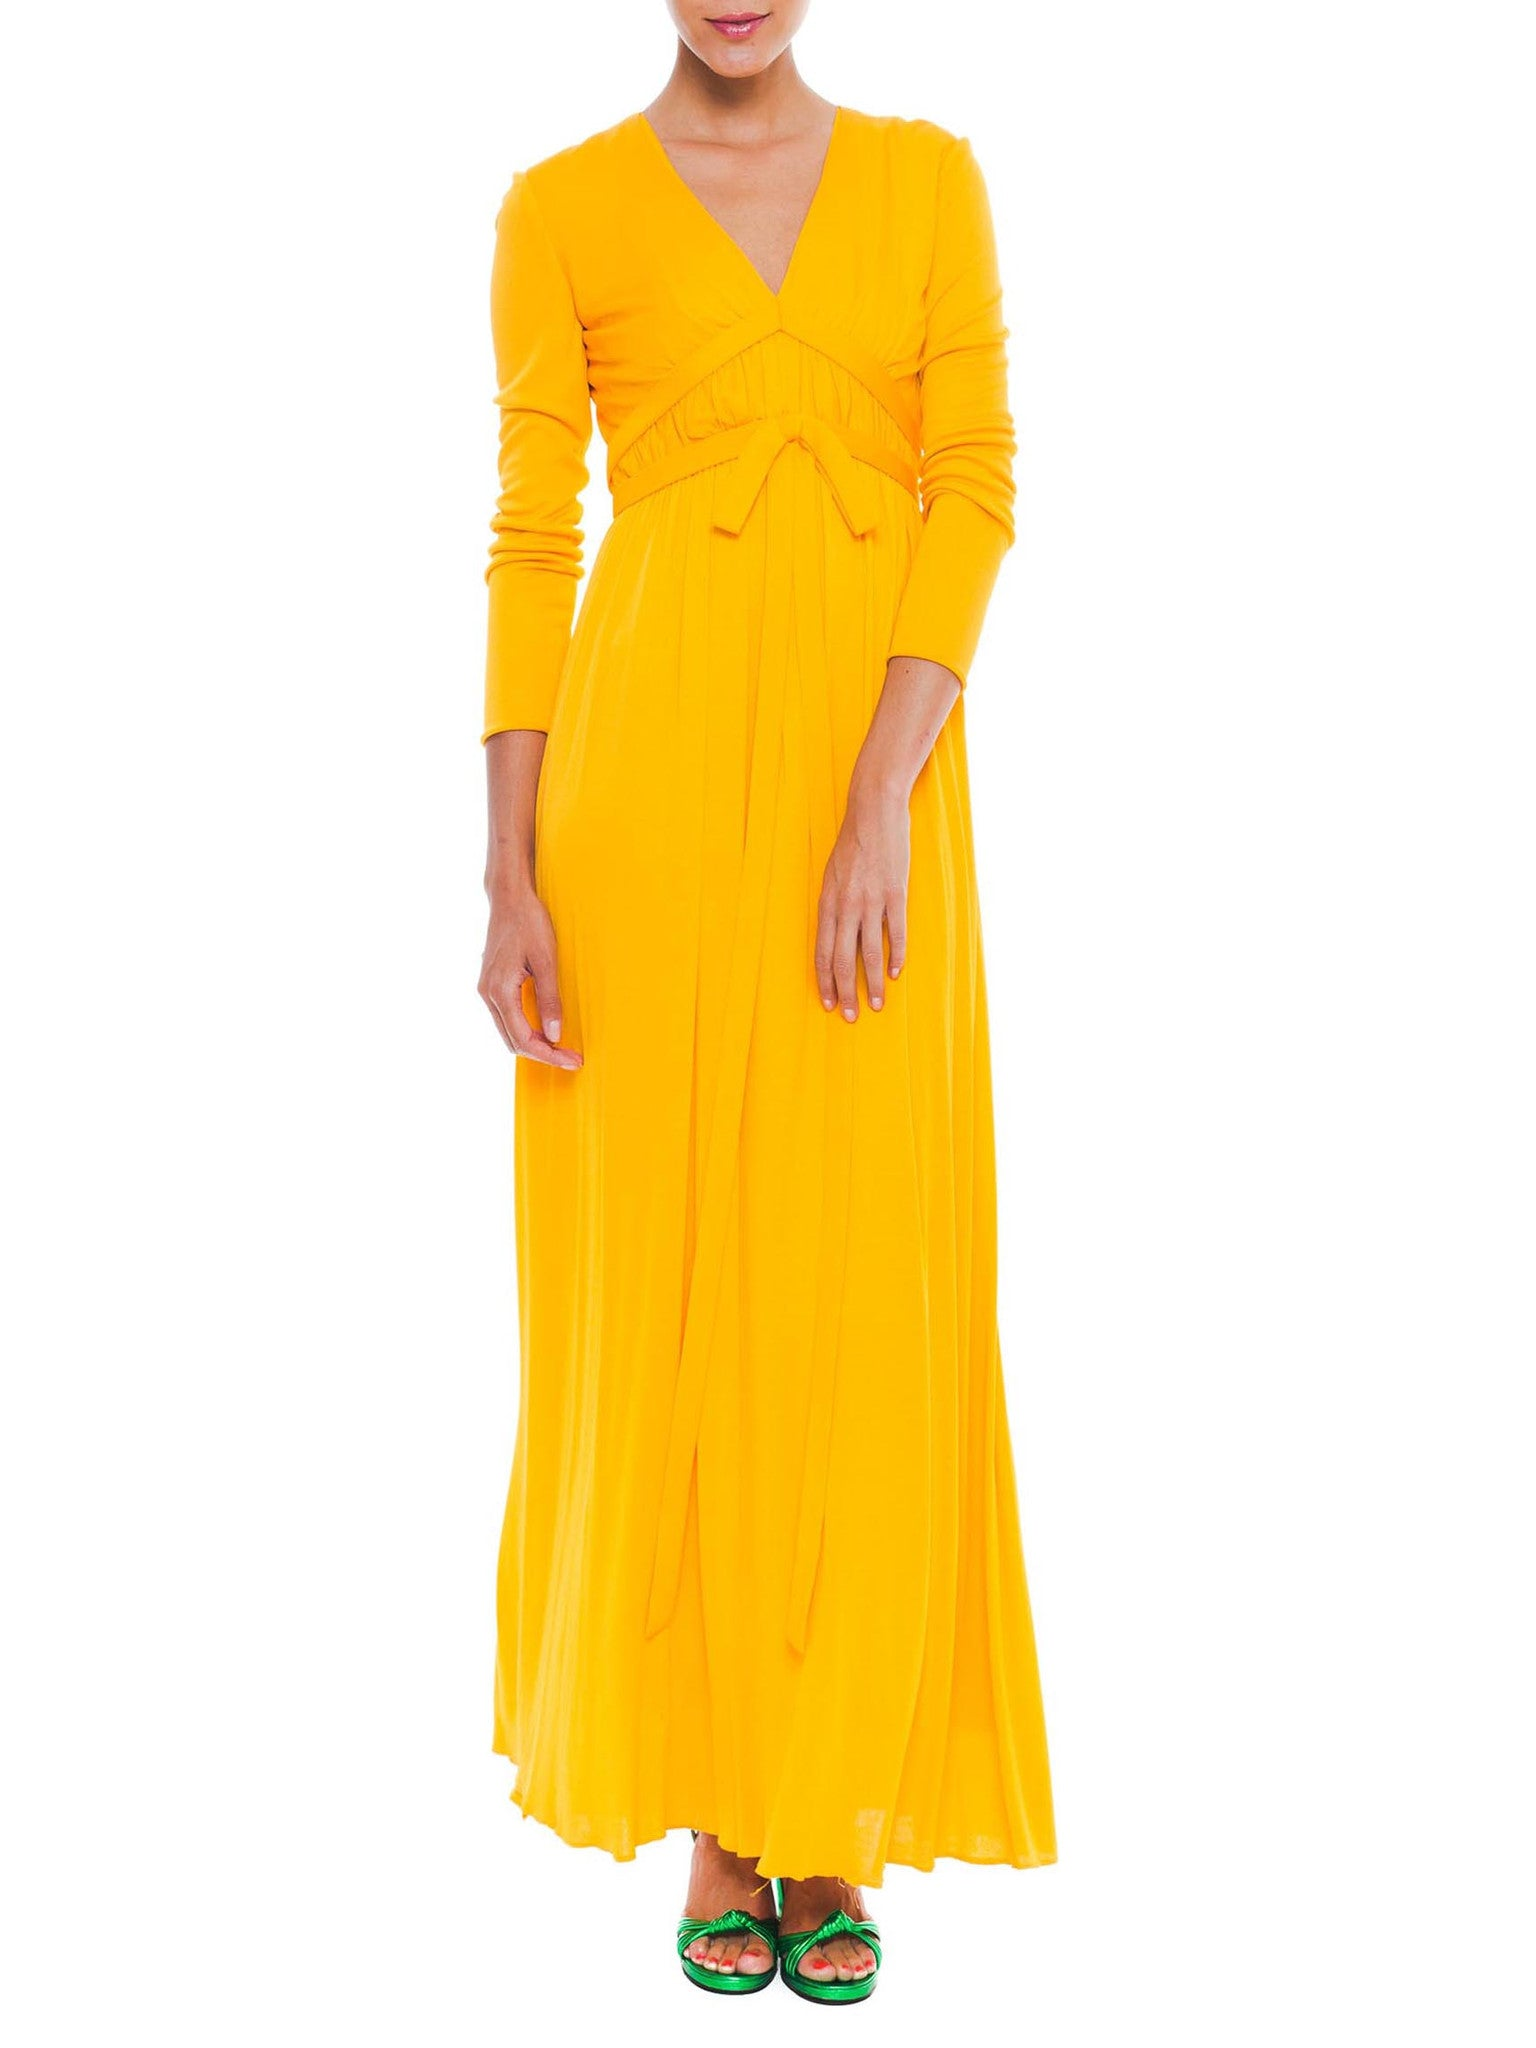 1970S MALCOLM STARR Yellow Orange Rayon Jersey Long Sleeve Empire Waist Gown With Bow Belt